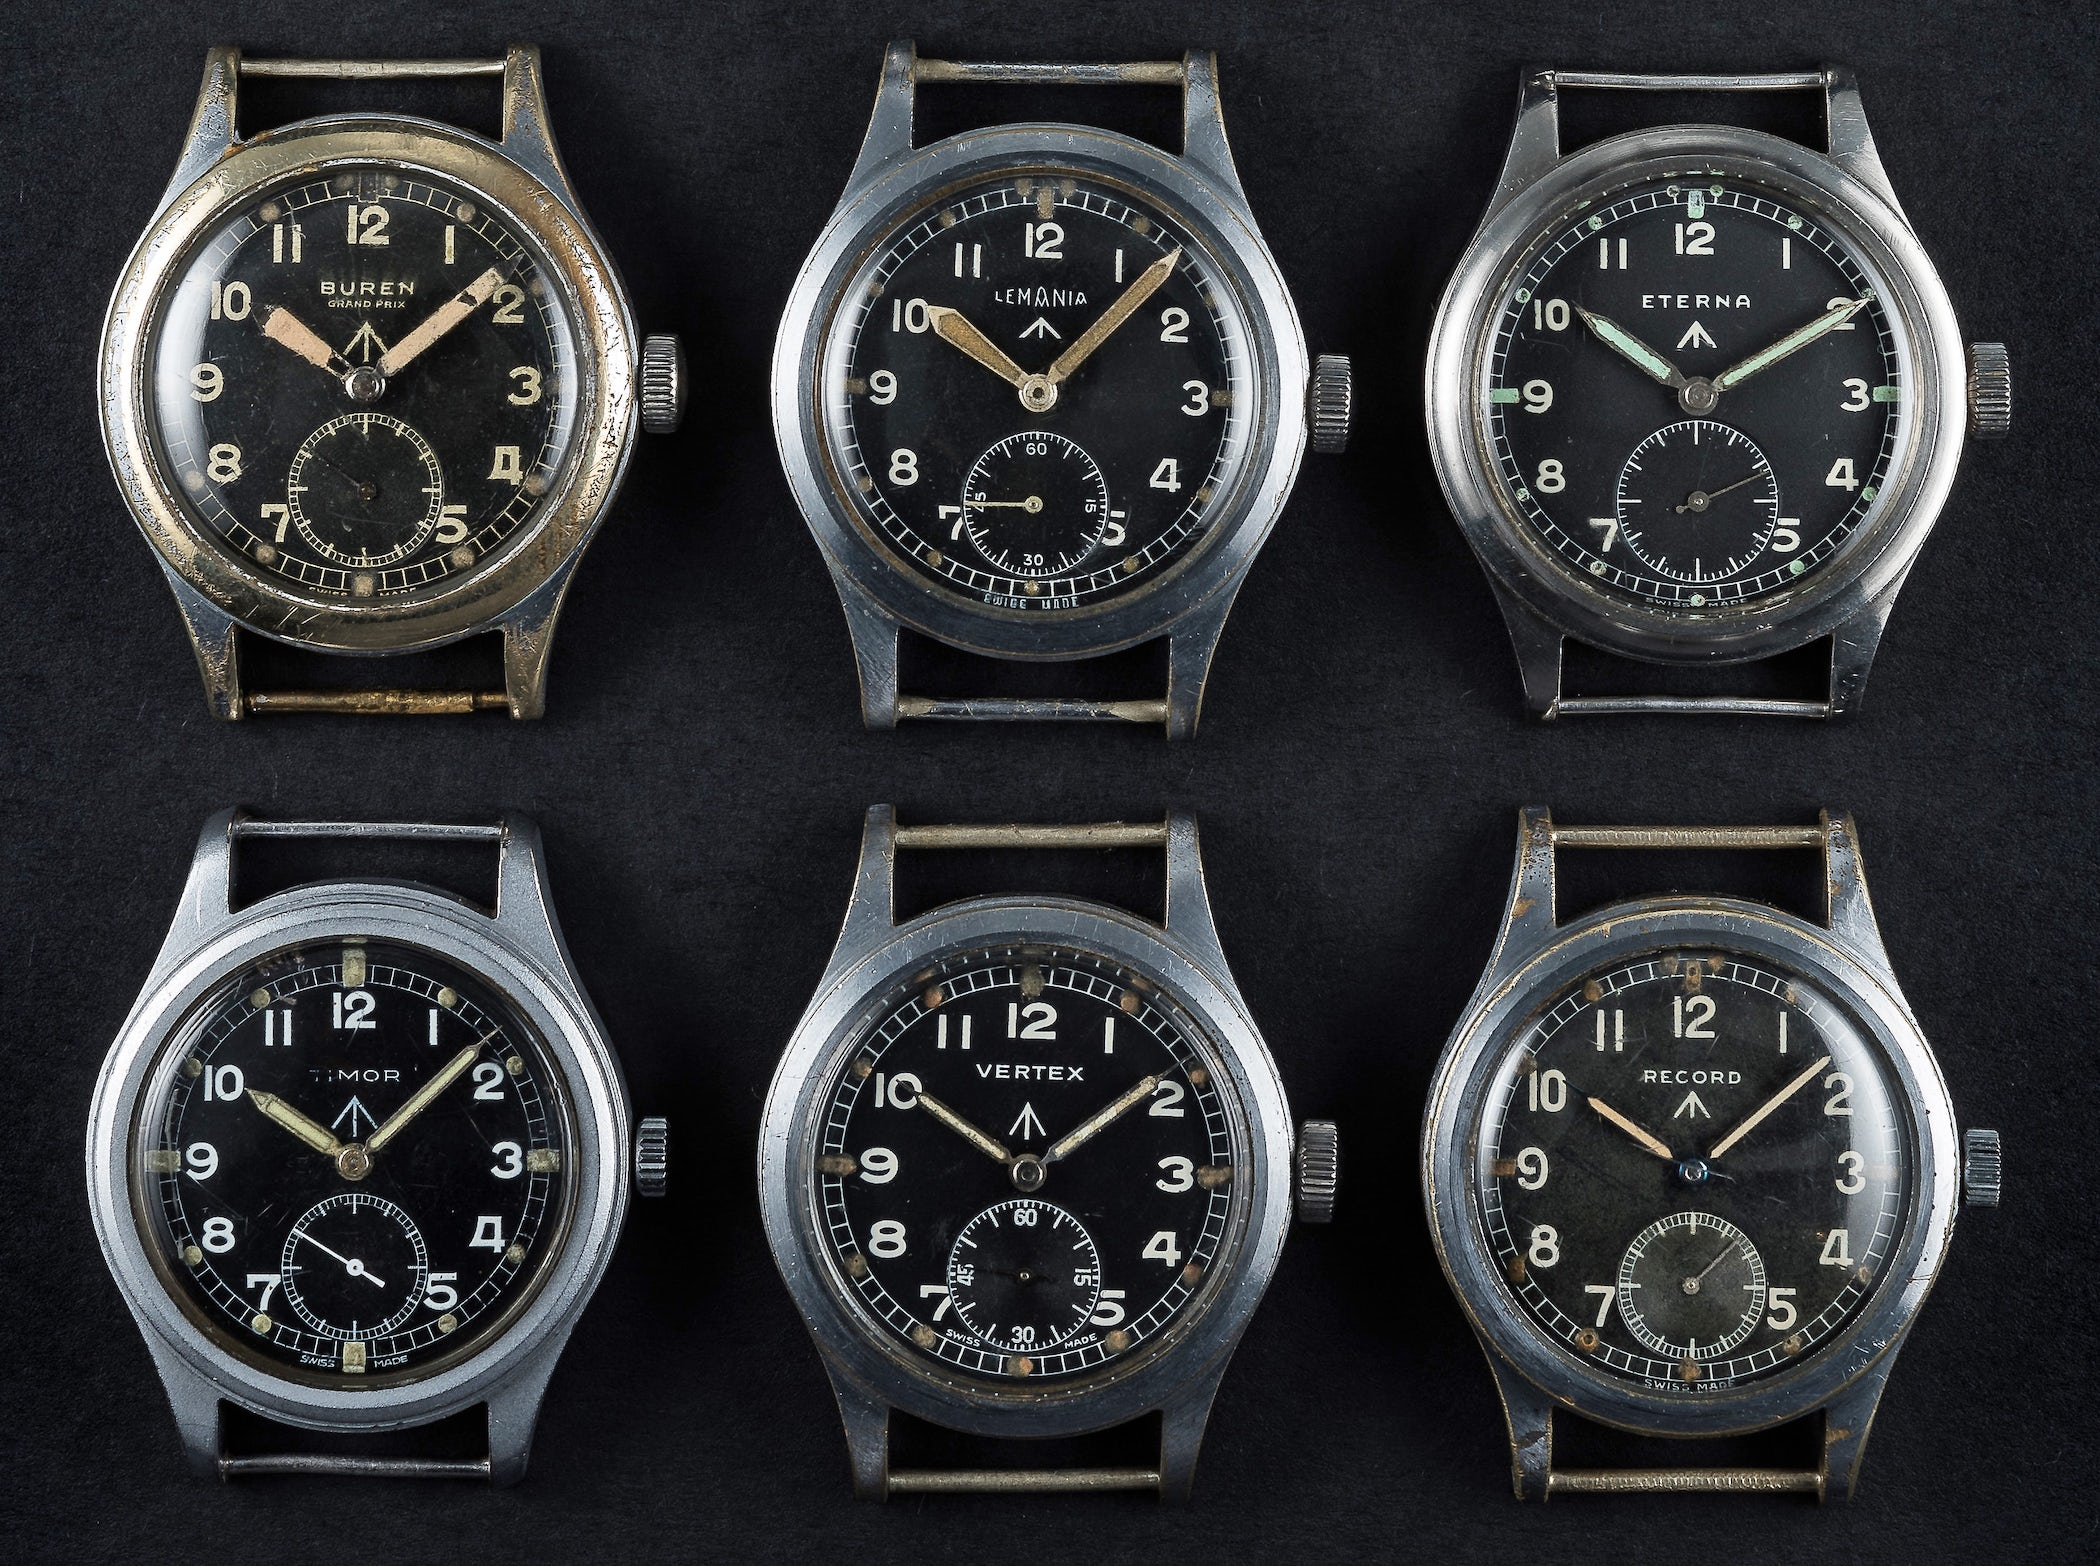 Dirty Dozen military WWII watch